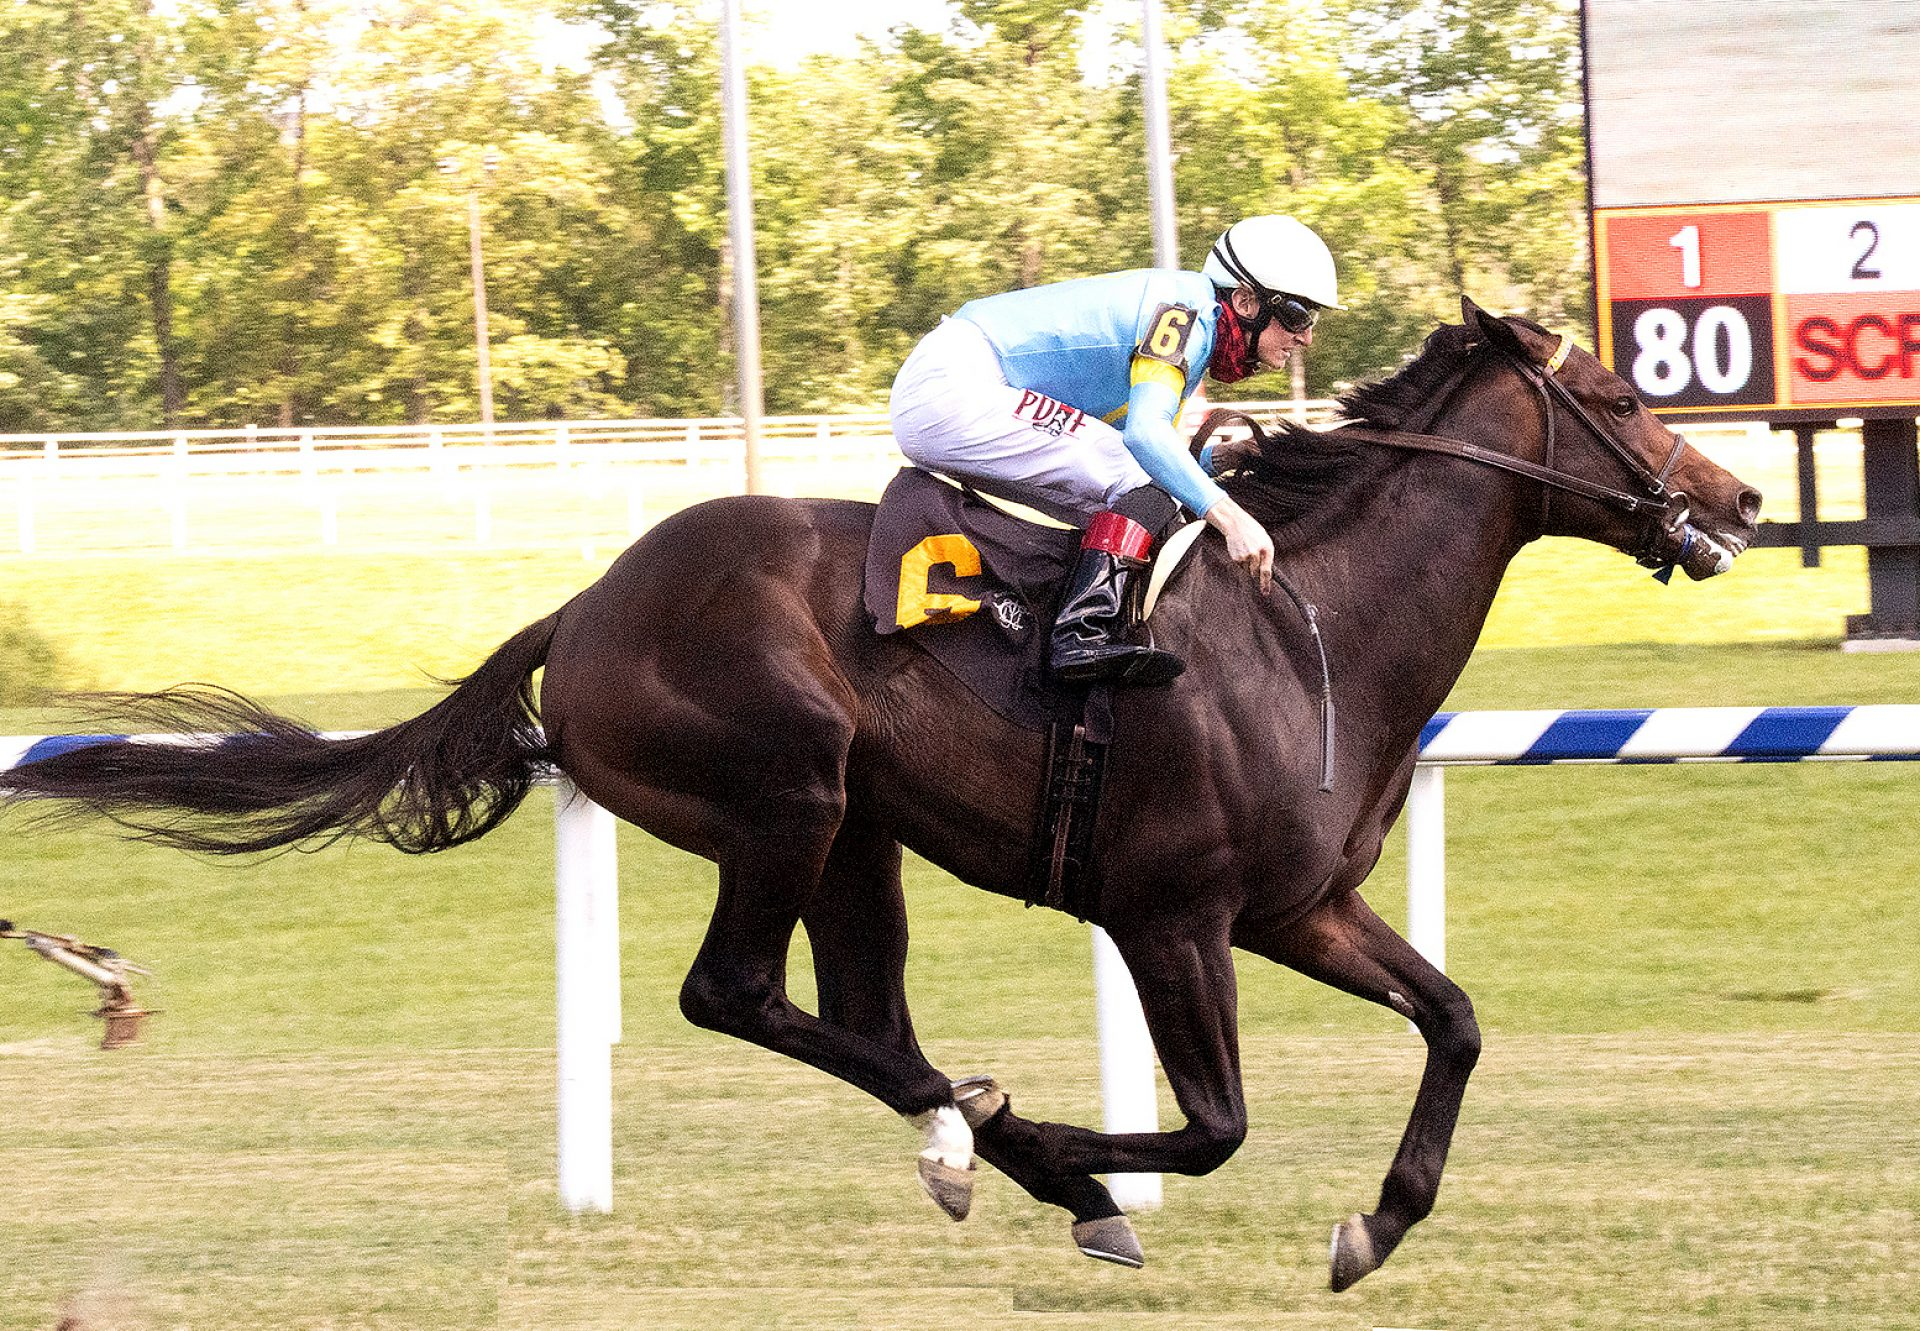 Maryland Mo (Uncle Mo) wins Laurel Maiden